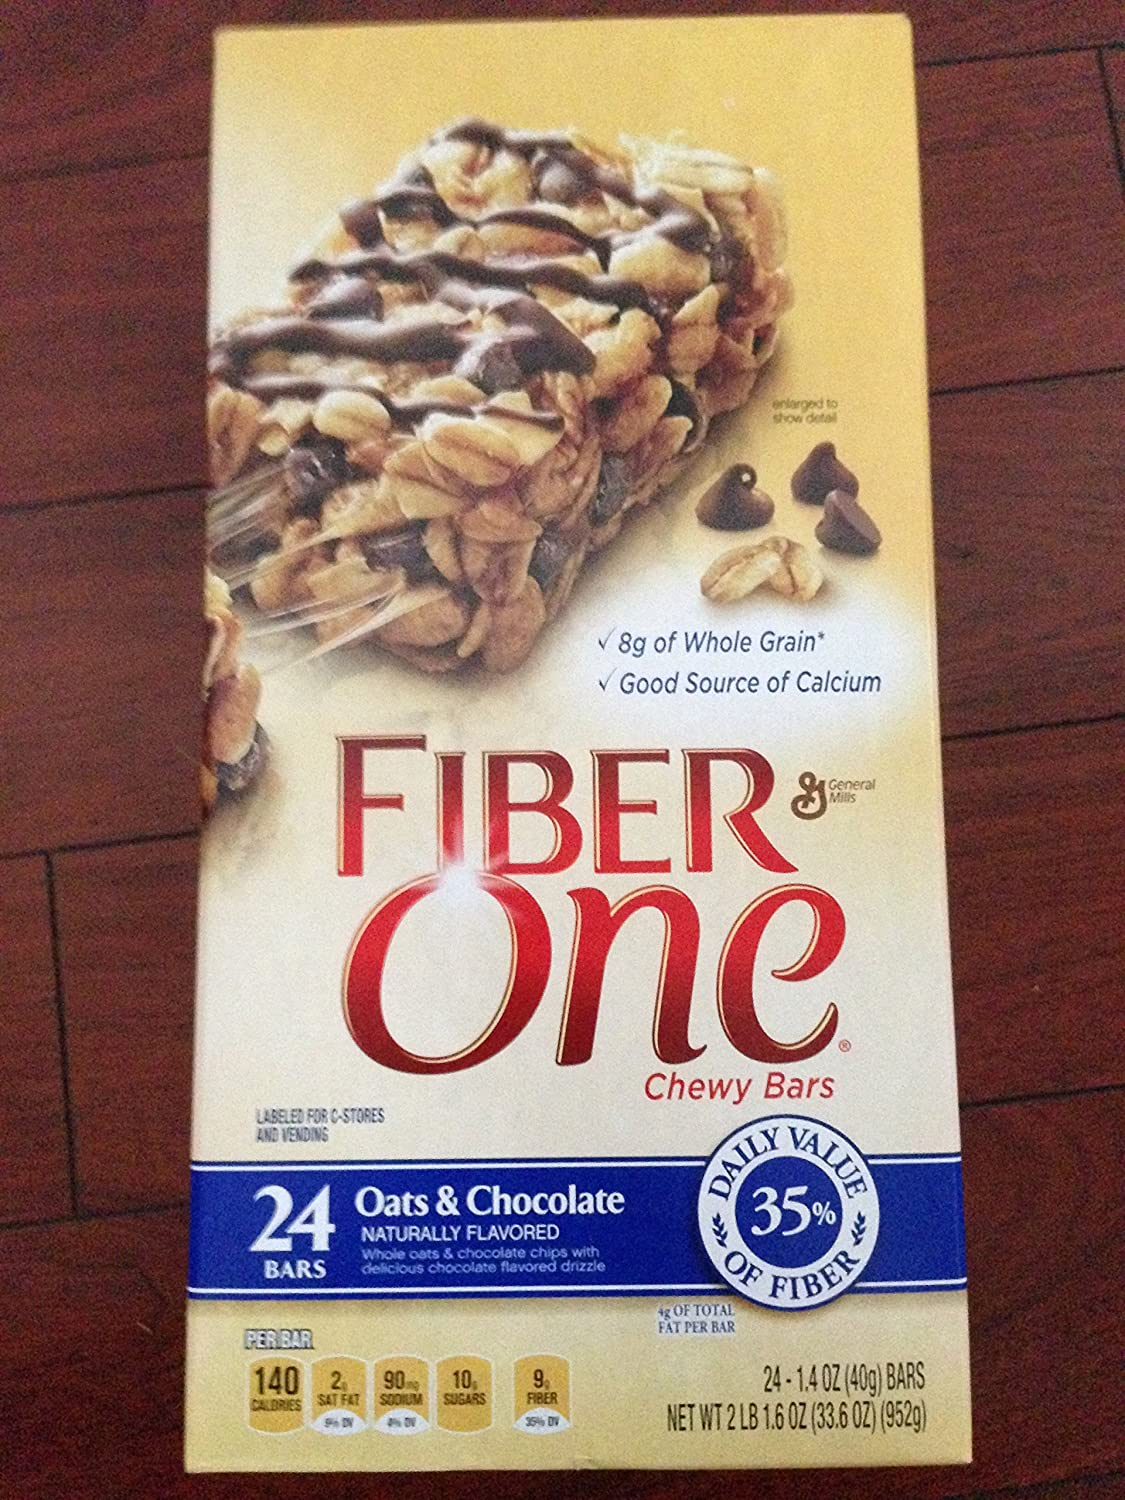 Fiber One Oats And Chocolate Bar Review